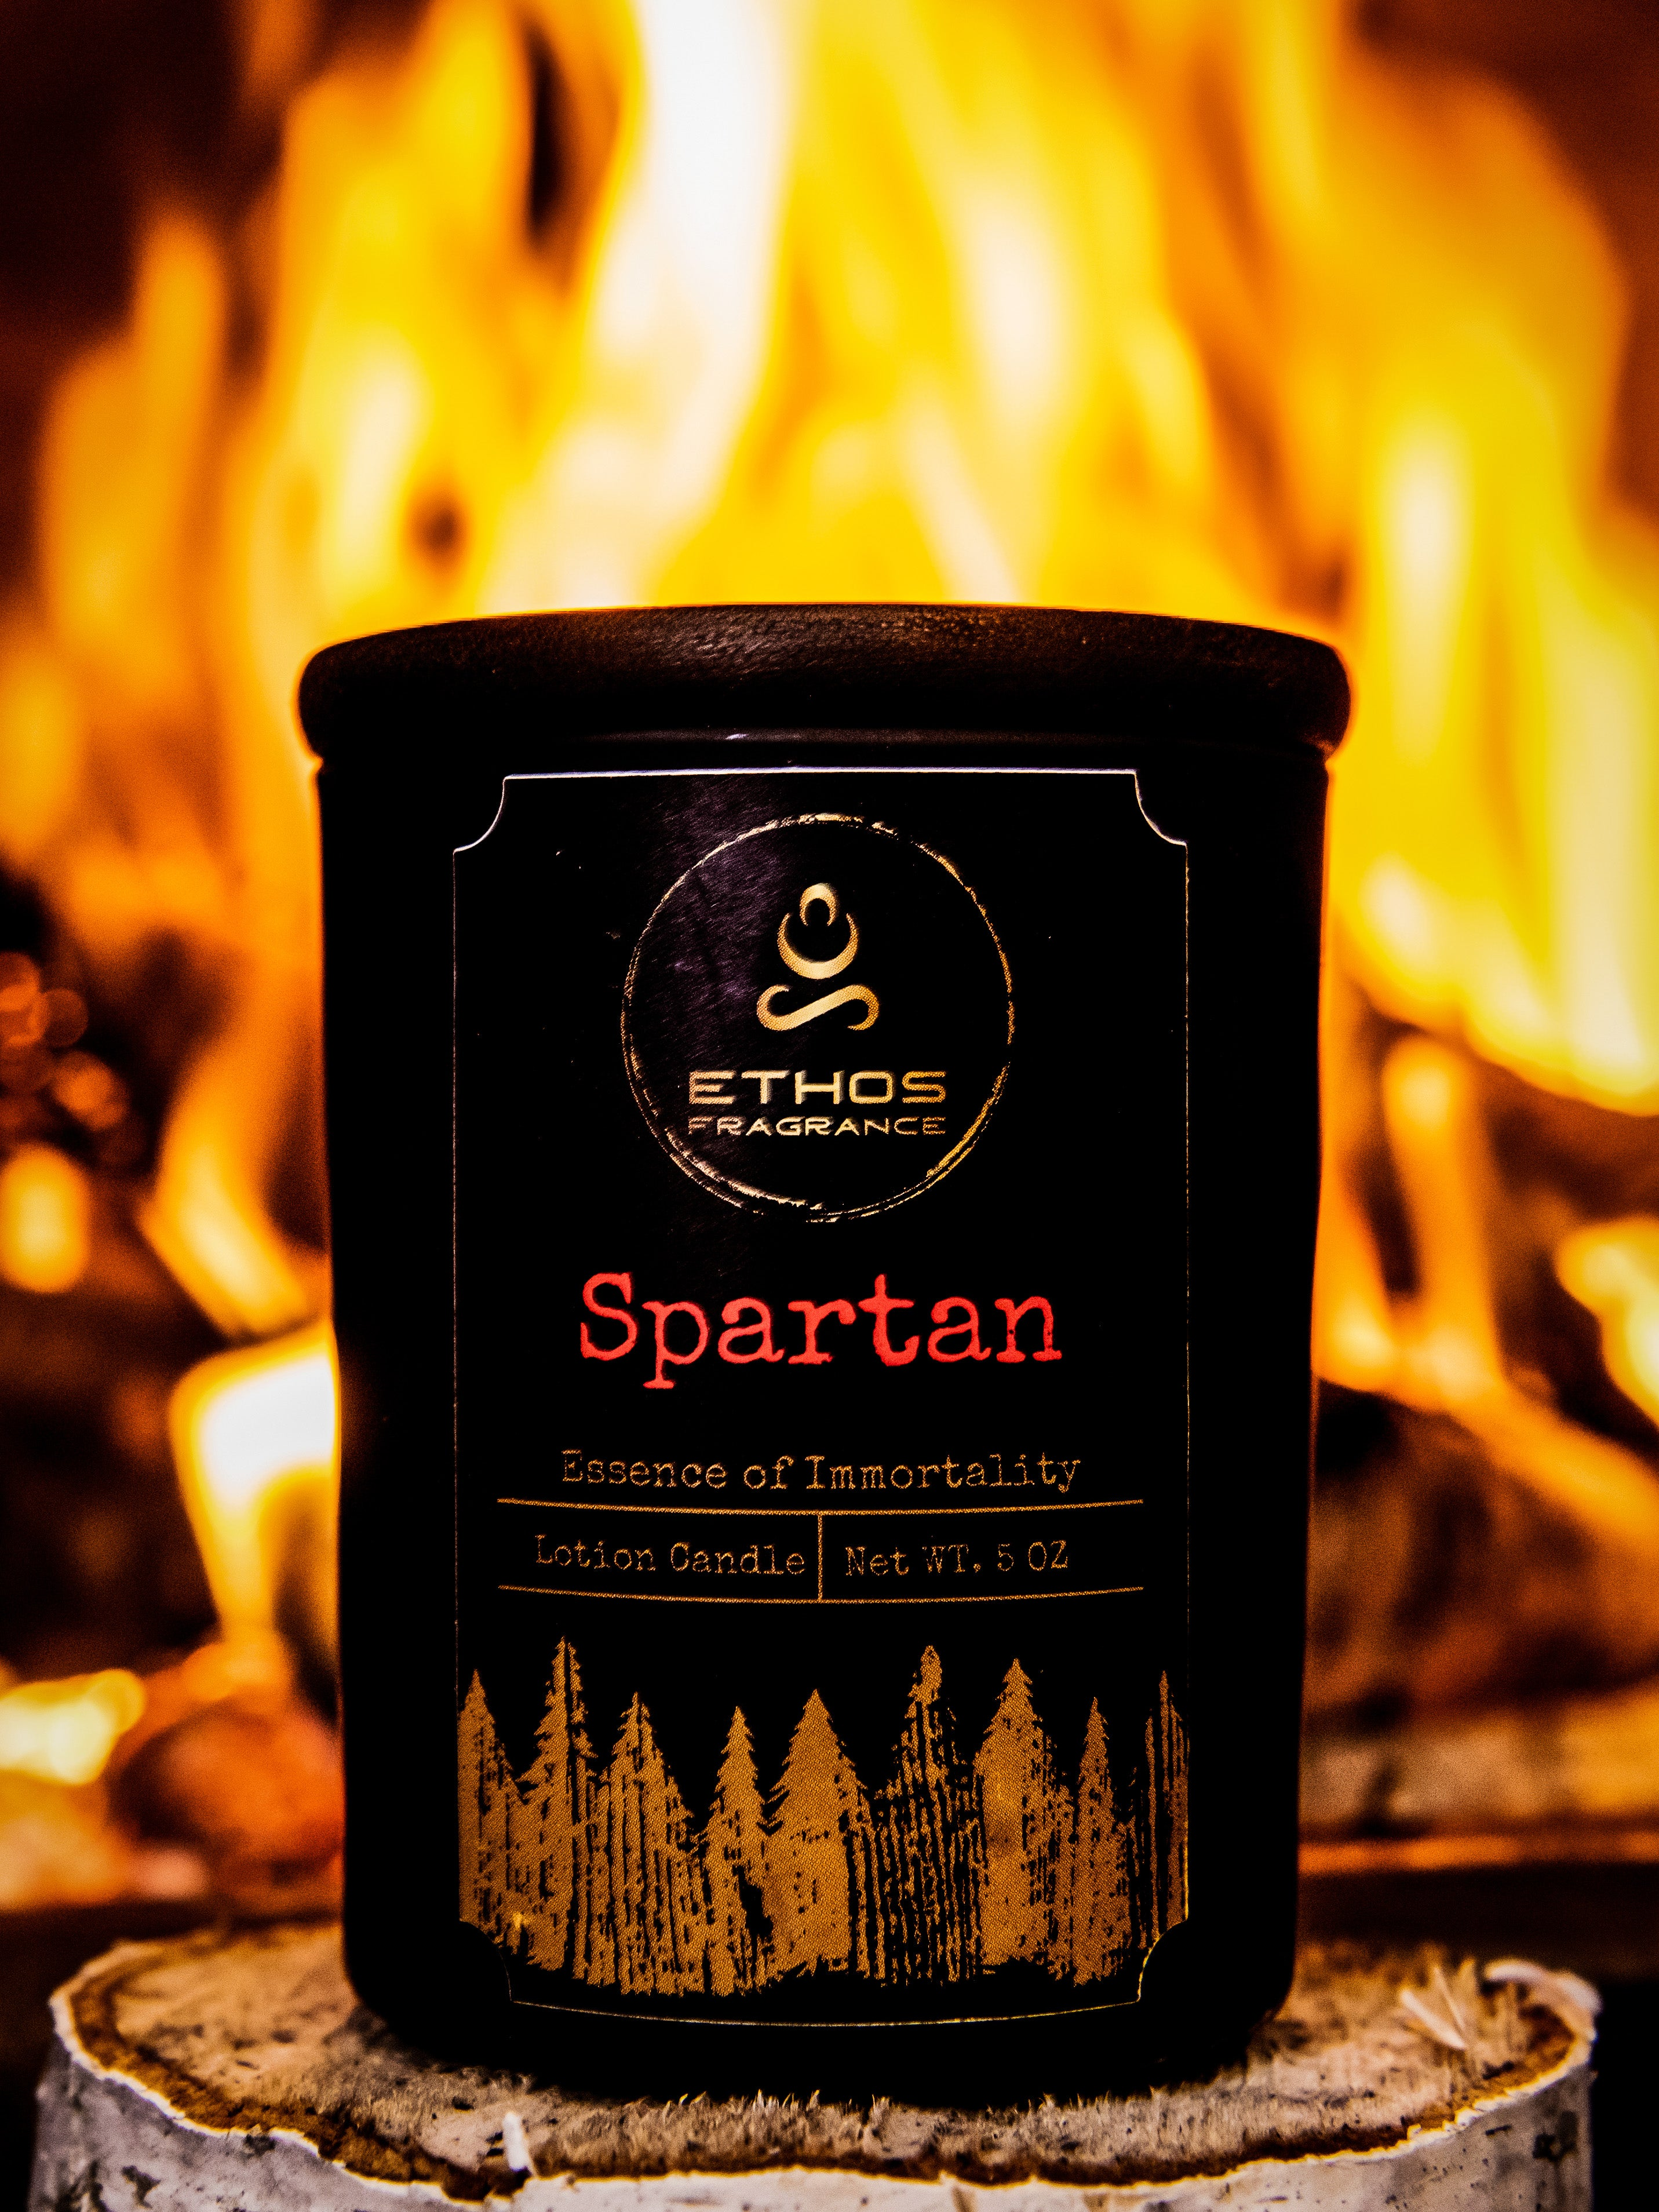 Lotion Candle- SPARTAN